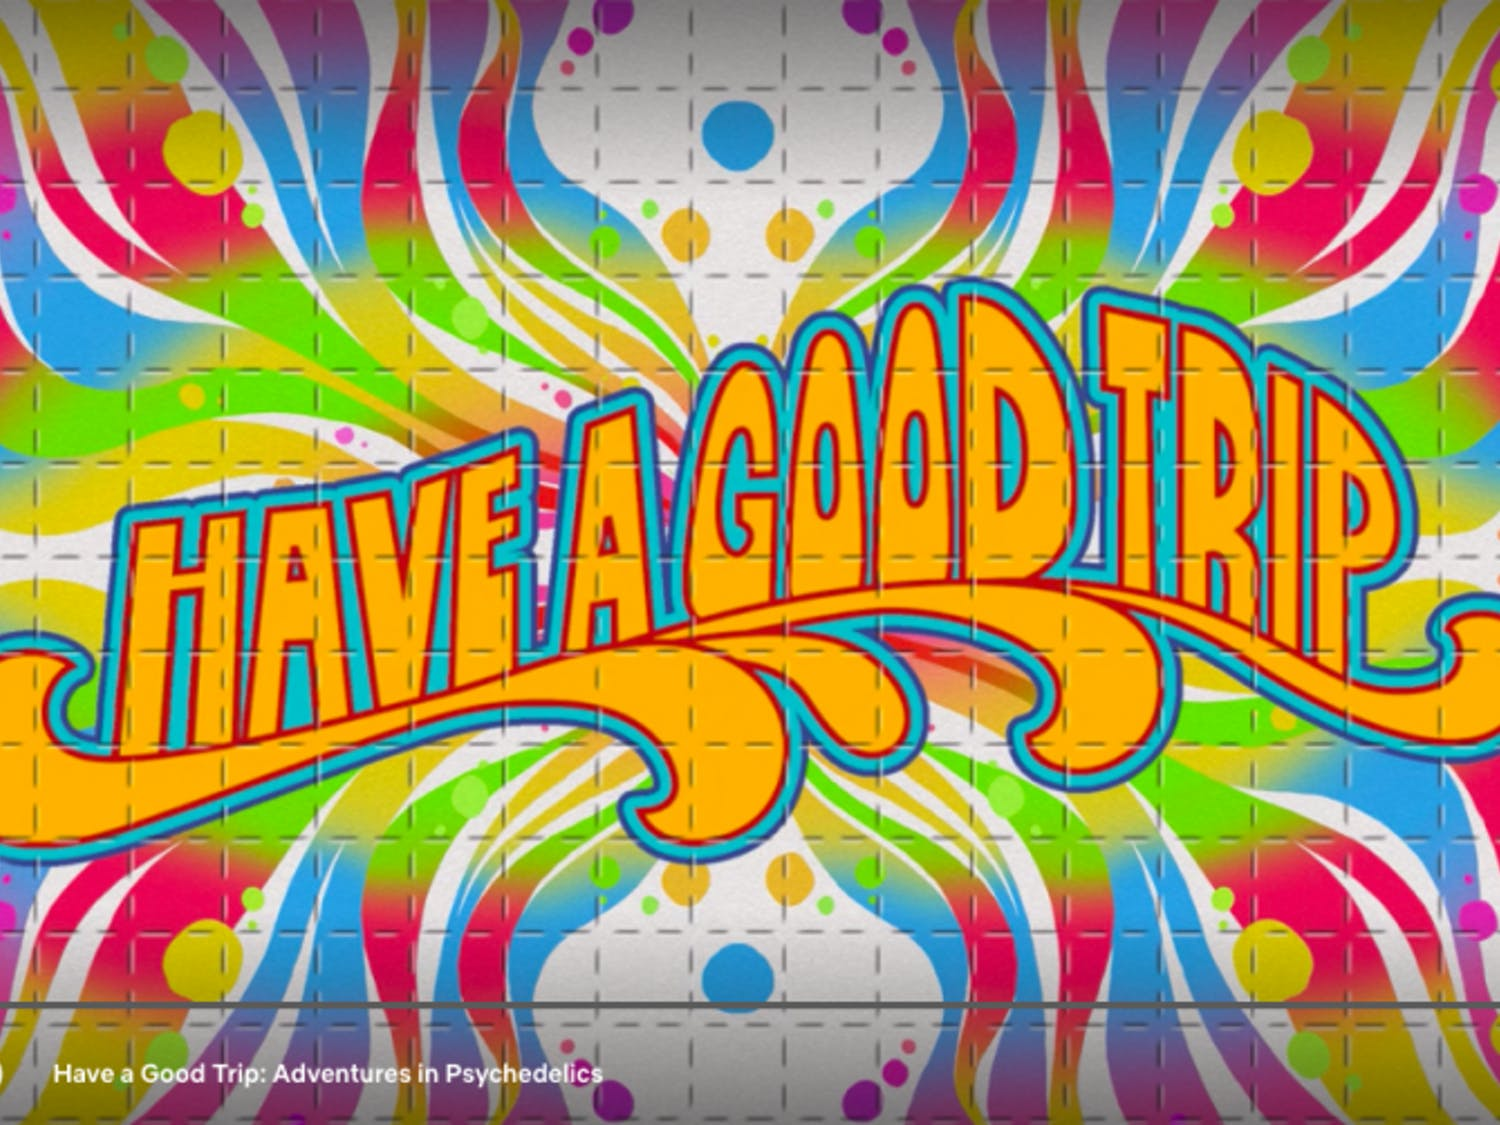 """""""Have a Good Trip"""" aims to debunk the idea that psychedelics are a torturous one-way journey towards psychosis by interviewing beloved celebrities and animating their spiritual, orgasmic and rejuvenating experiences in the psychedelic realm."""